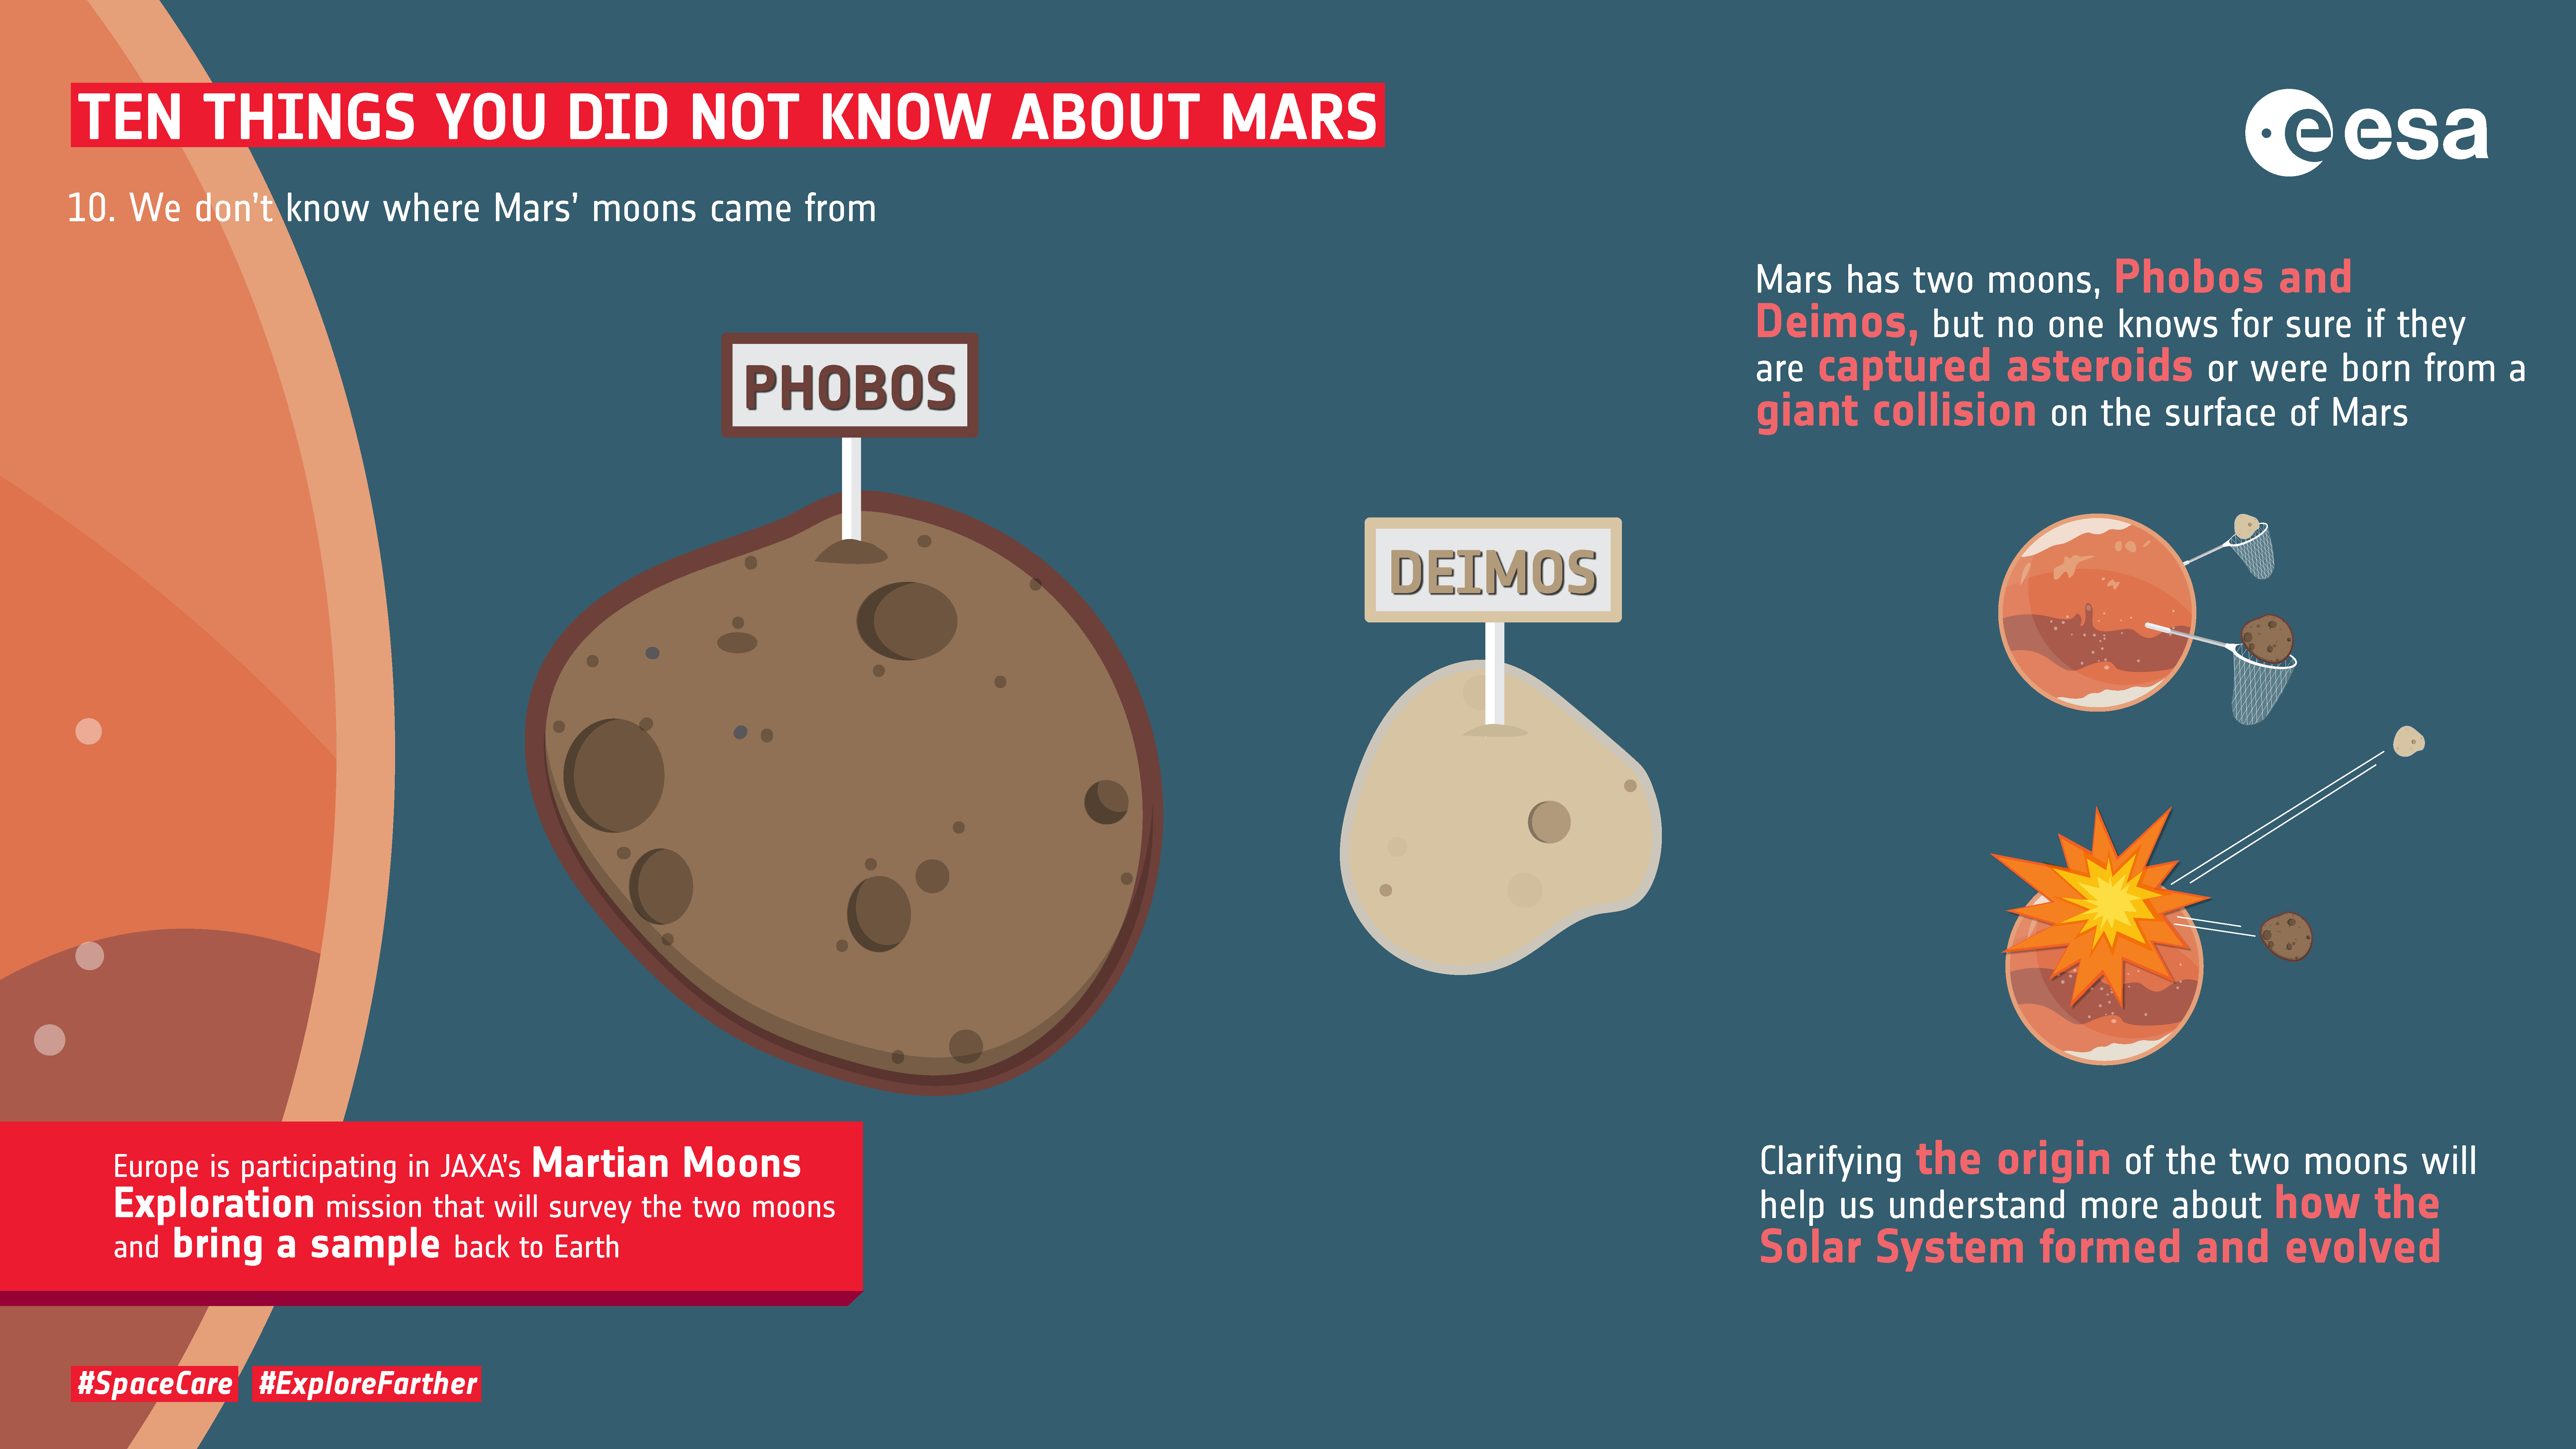 ESA - Ten things you did not know about Mars: 10. MoonsEuropean Space Agency